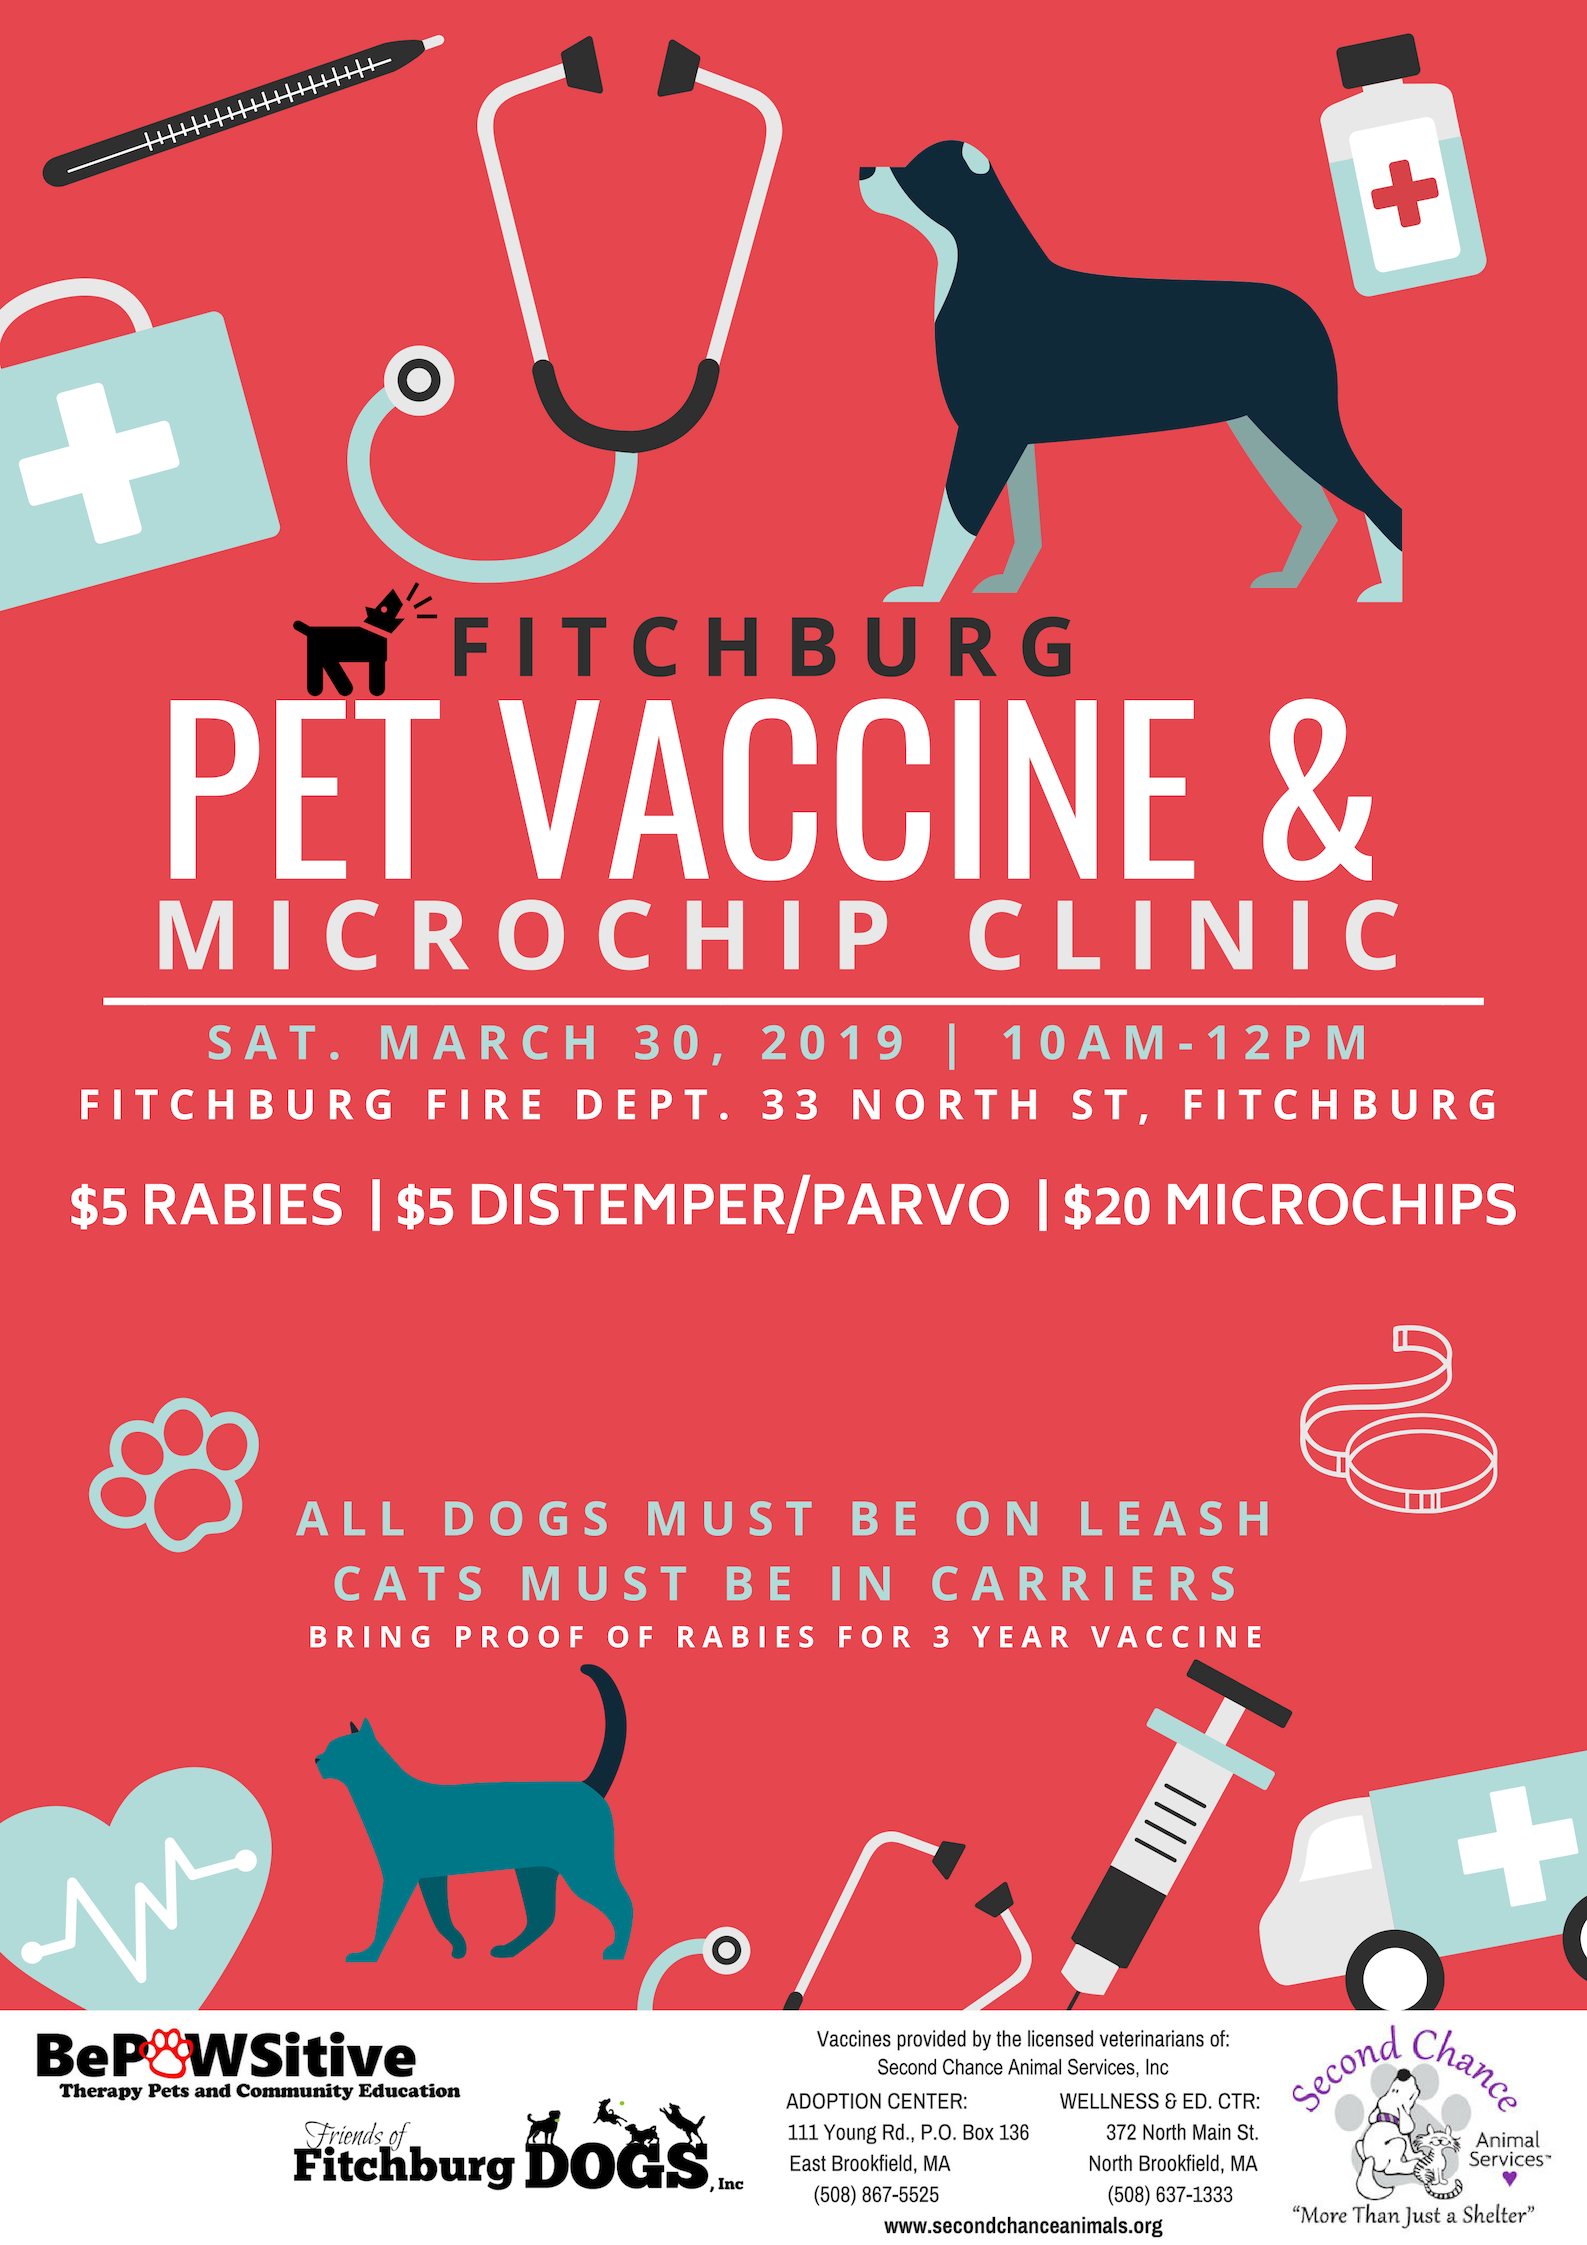 2019 3-30 Vaccine Clinic Fitchburg Flyer.jpg